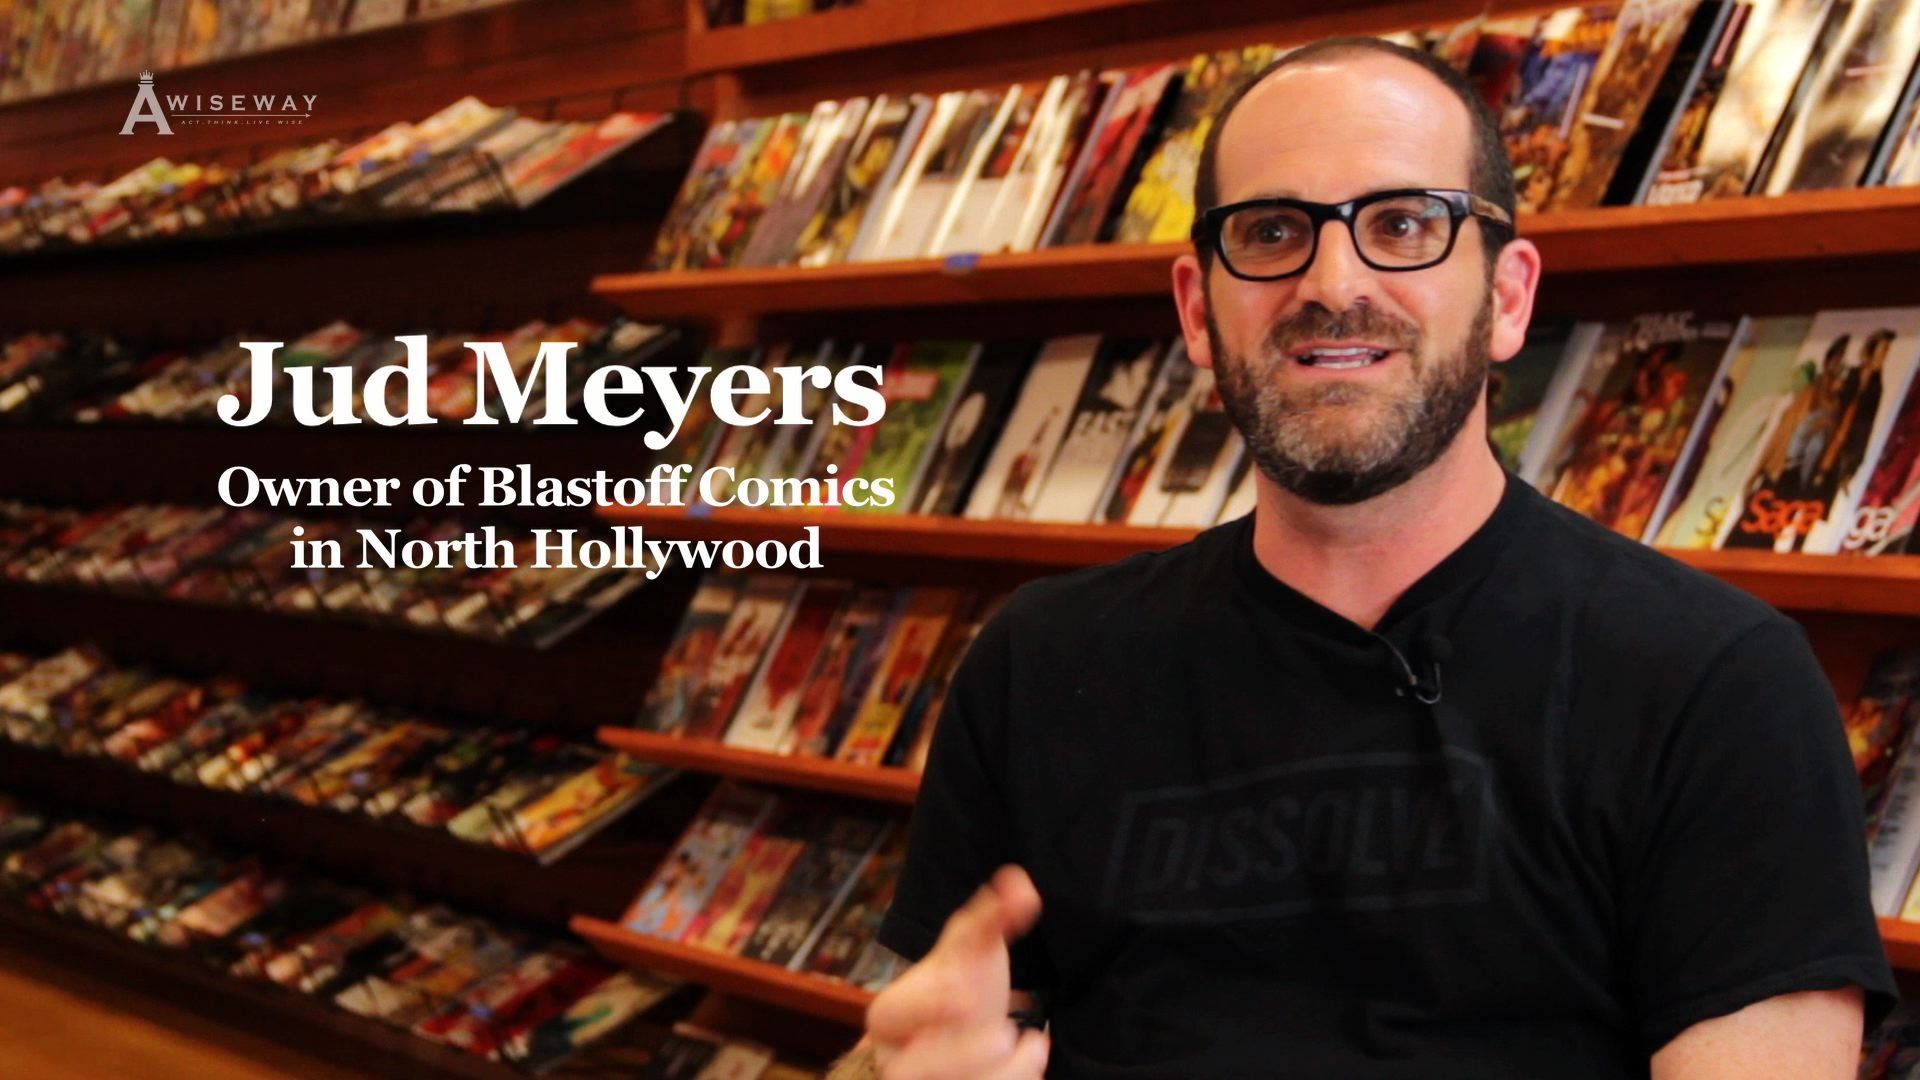 Blastoff Comics Owner, Jud Meyers Shares Never Using Time Travel If Possible